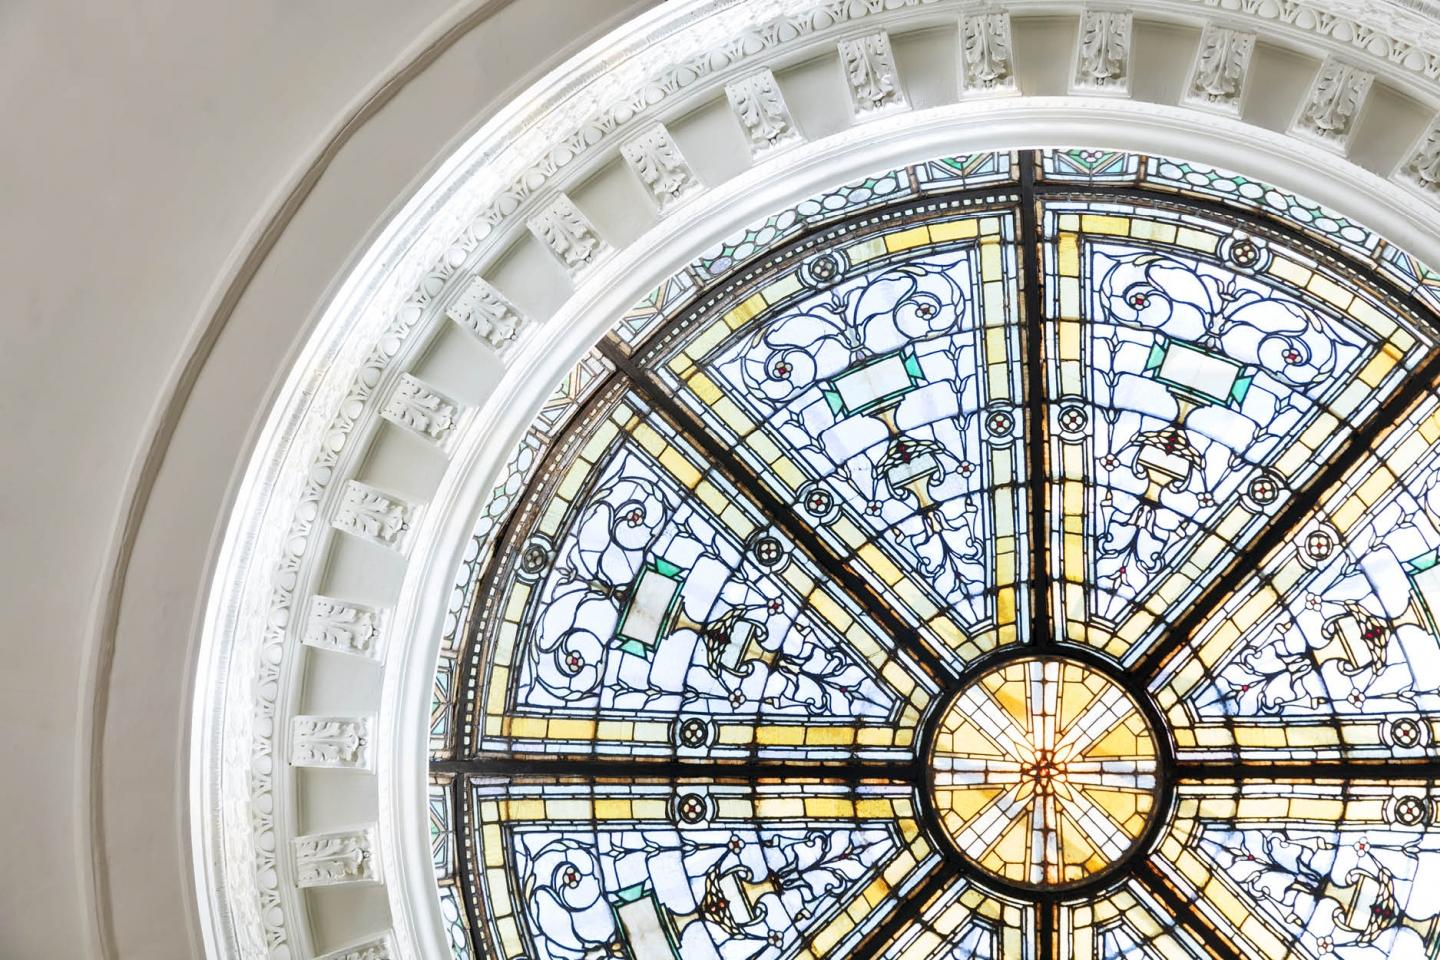 The stained glass domed ceiling